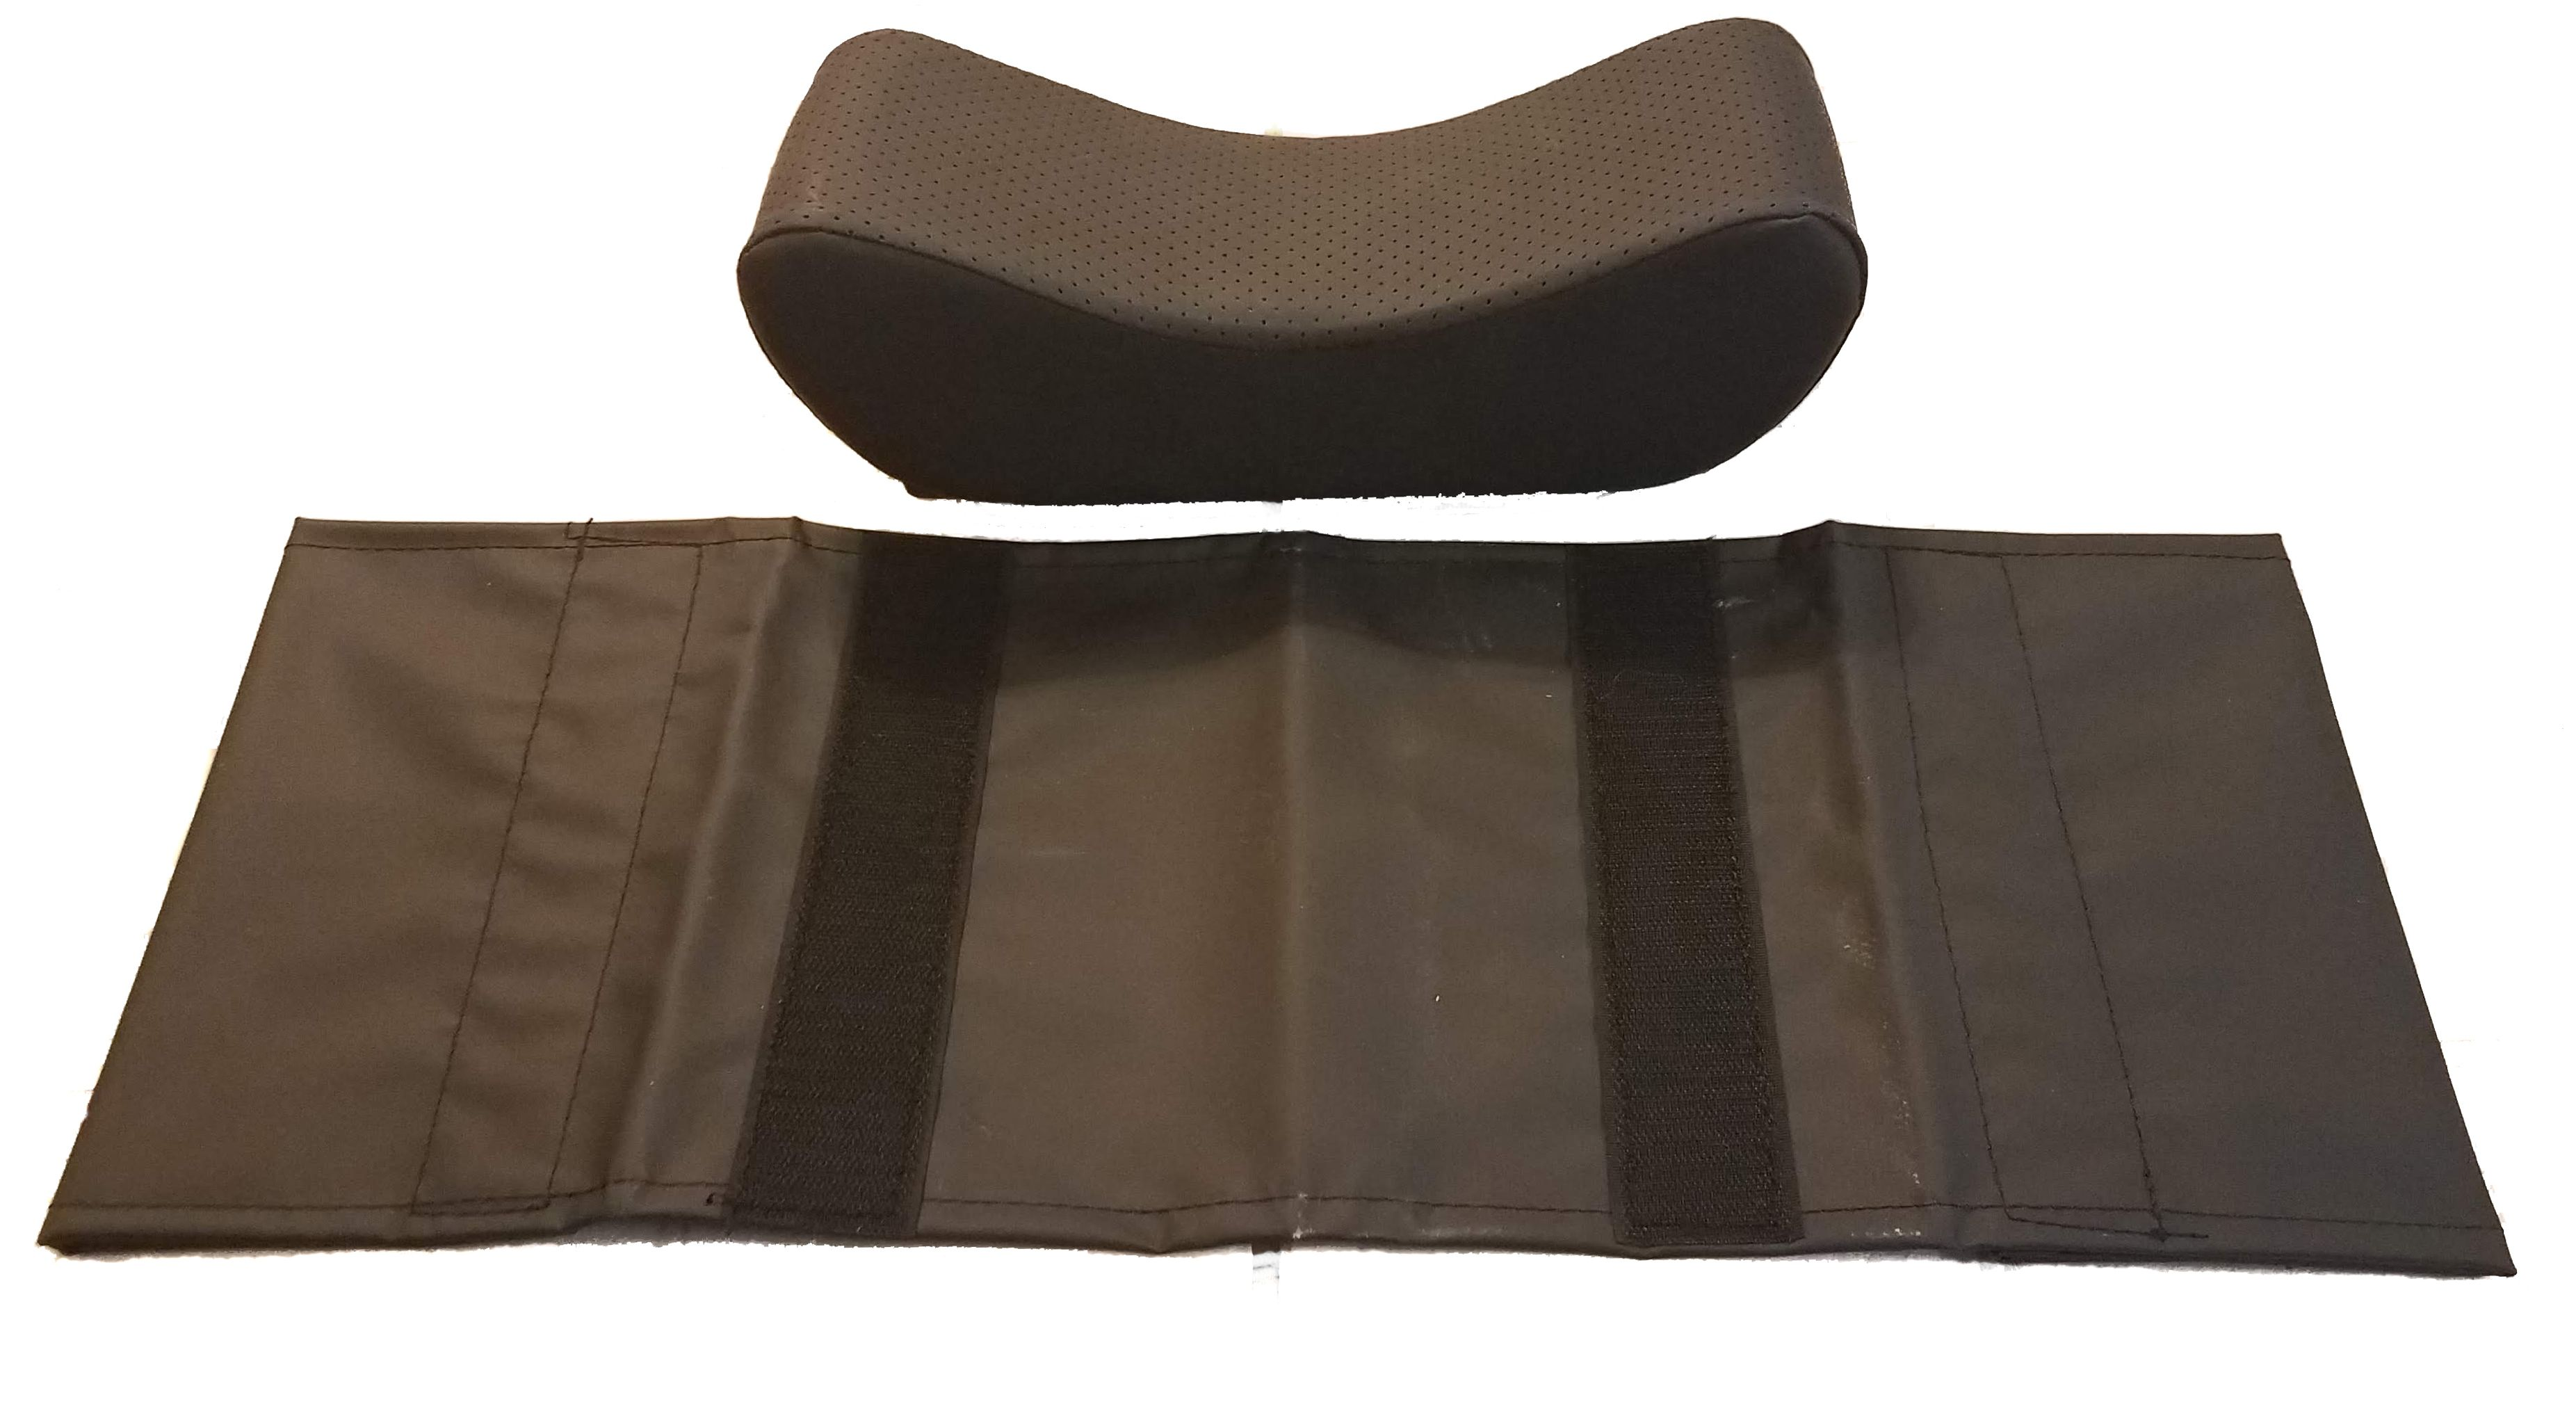 Replacement Head and Neck Rest for Stair Chairs